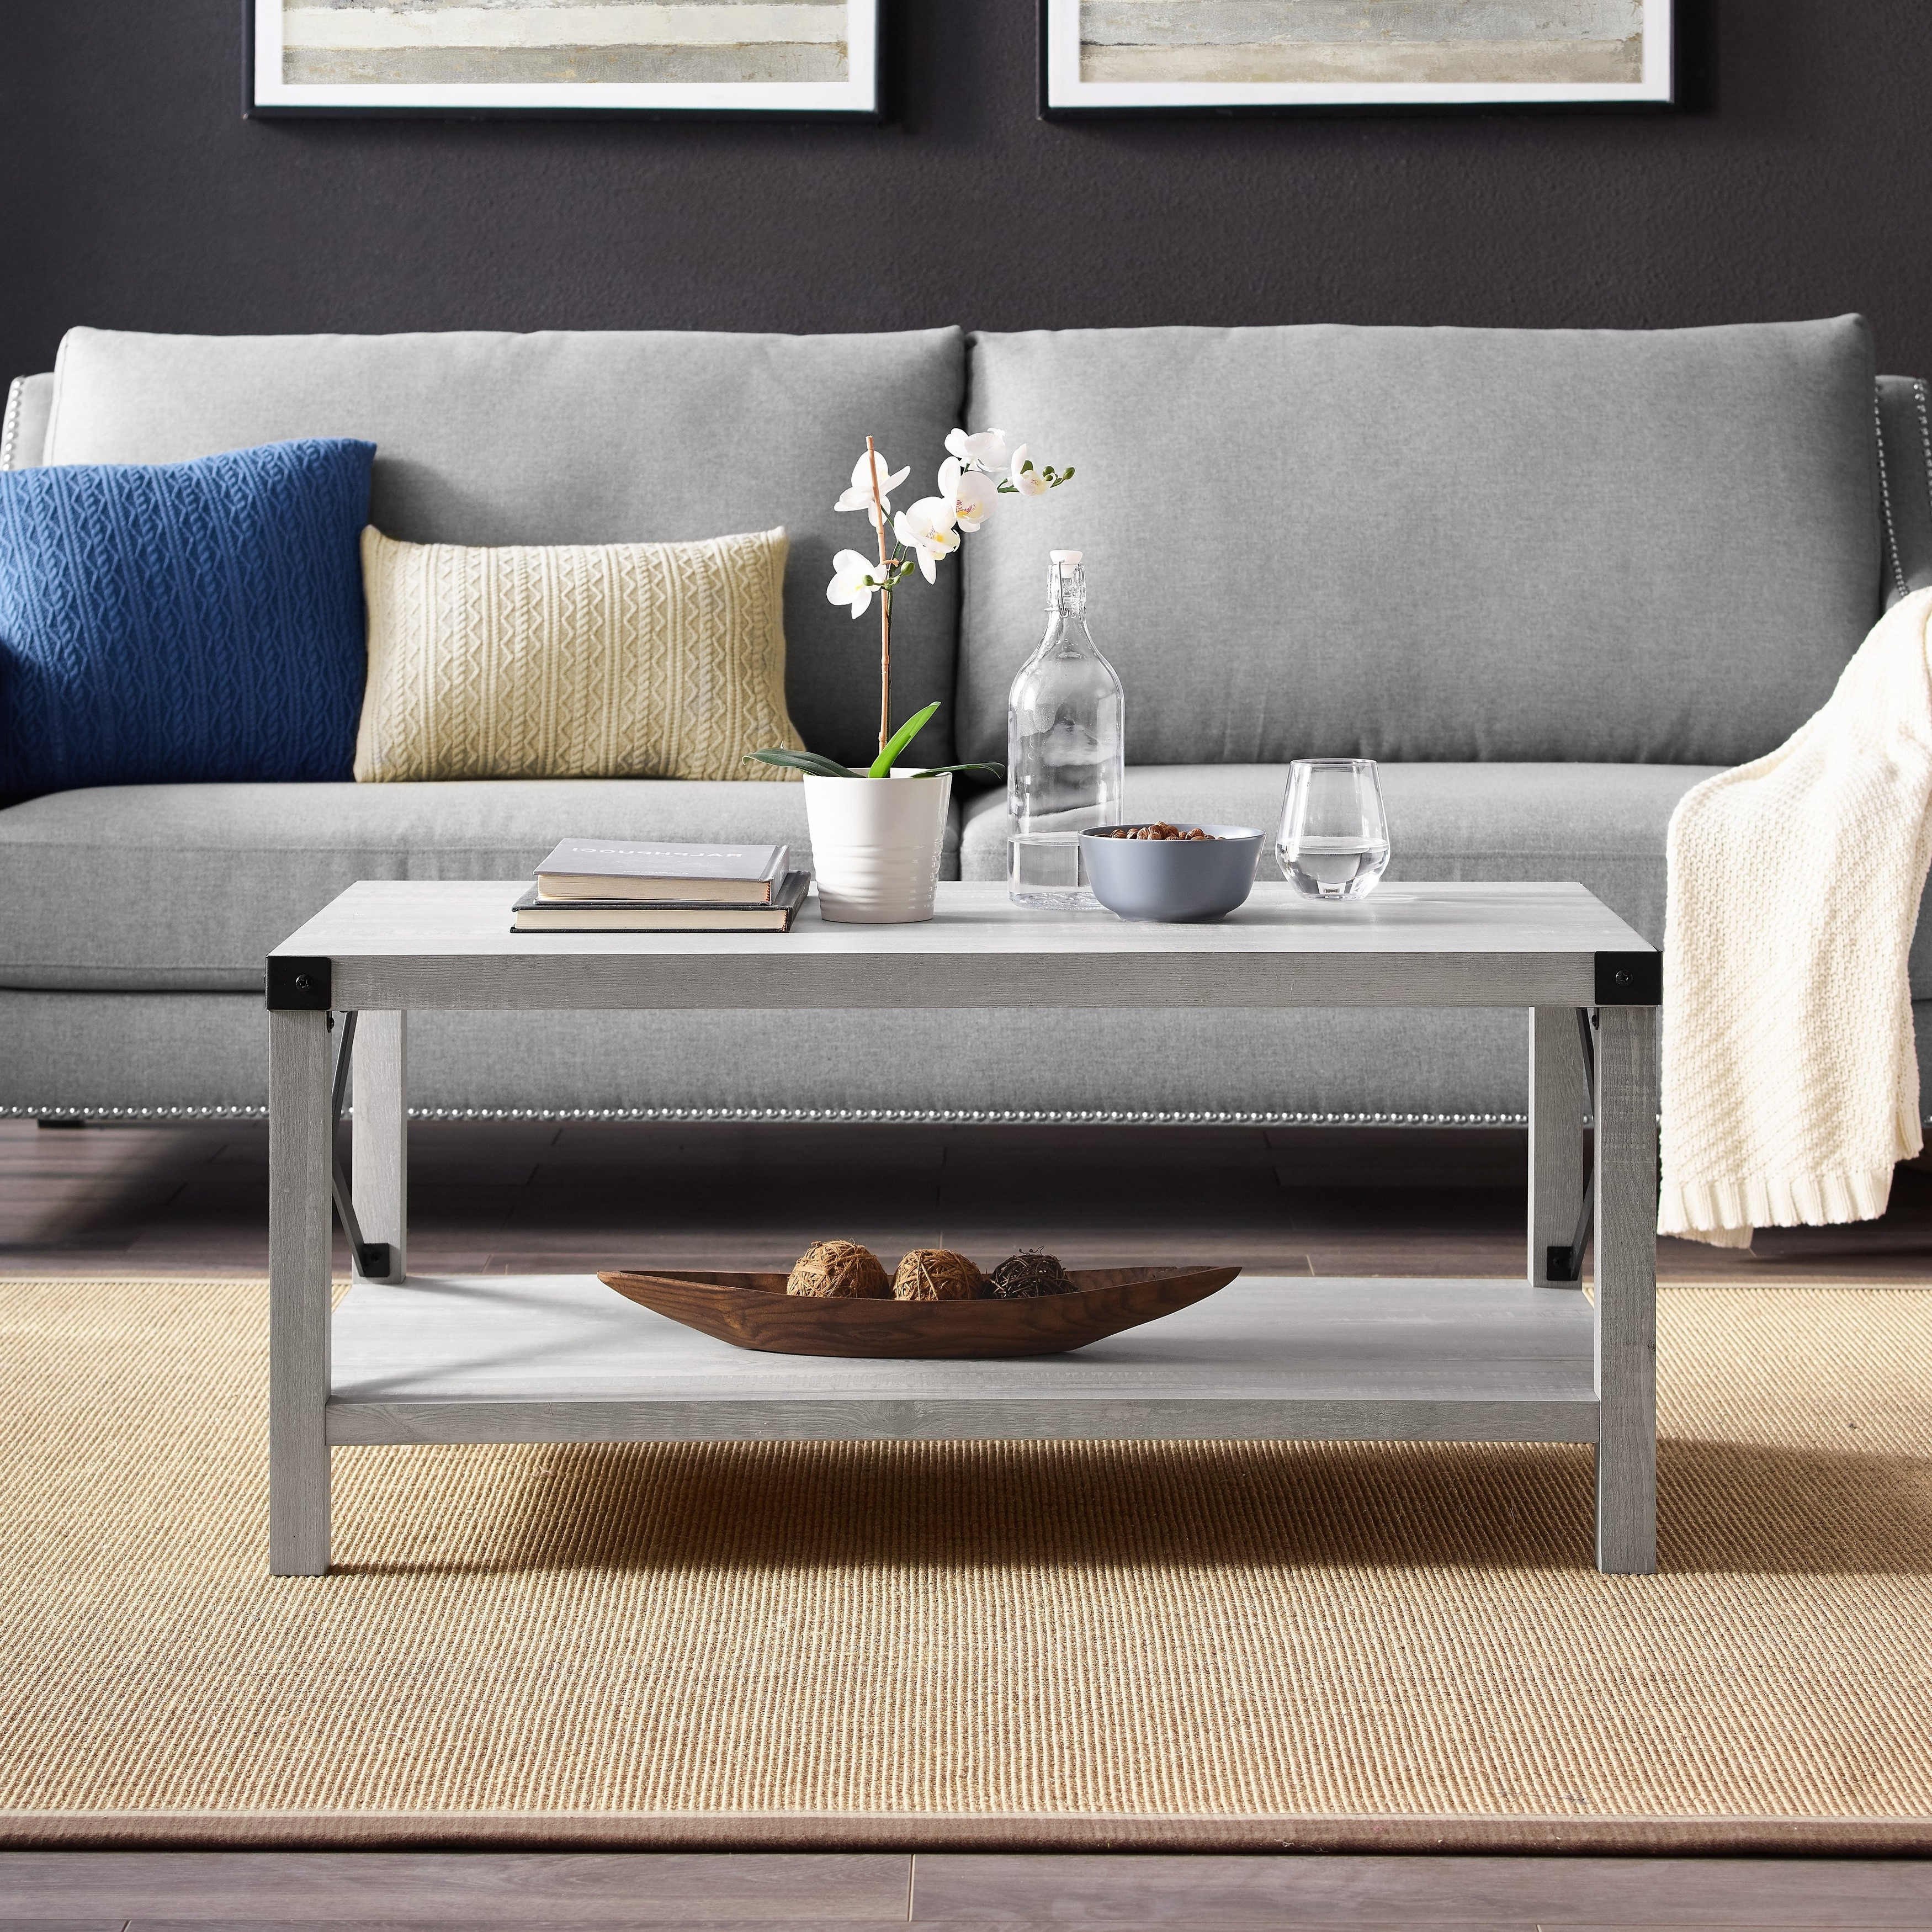 The Gray Barn Kujawa Metal X Coffee Table – 40 X 22 X 18h Inside Newest The Gray Barn Kujawa Metal X Coffee Tables – 40 X 22 X 18h (View 9 of 20)